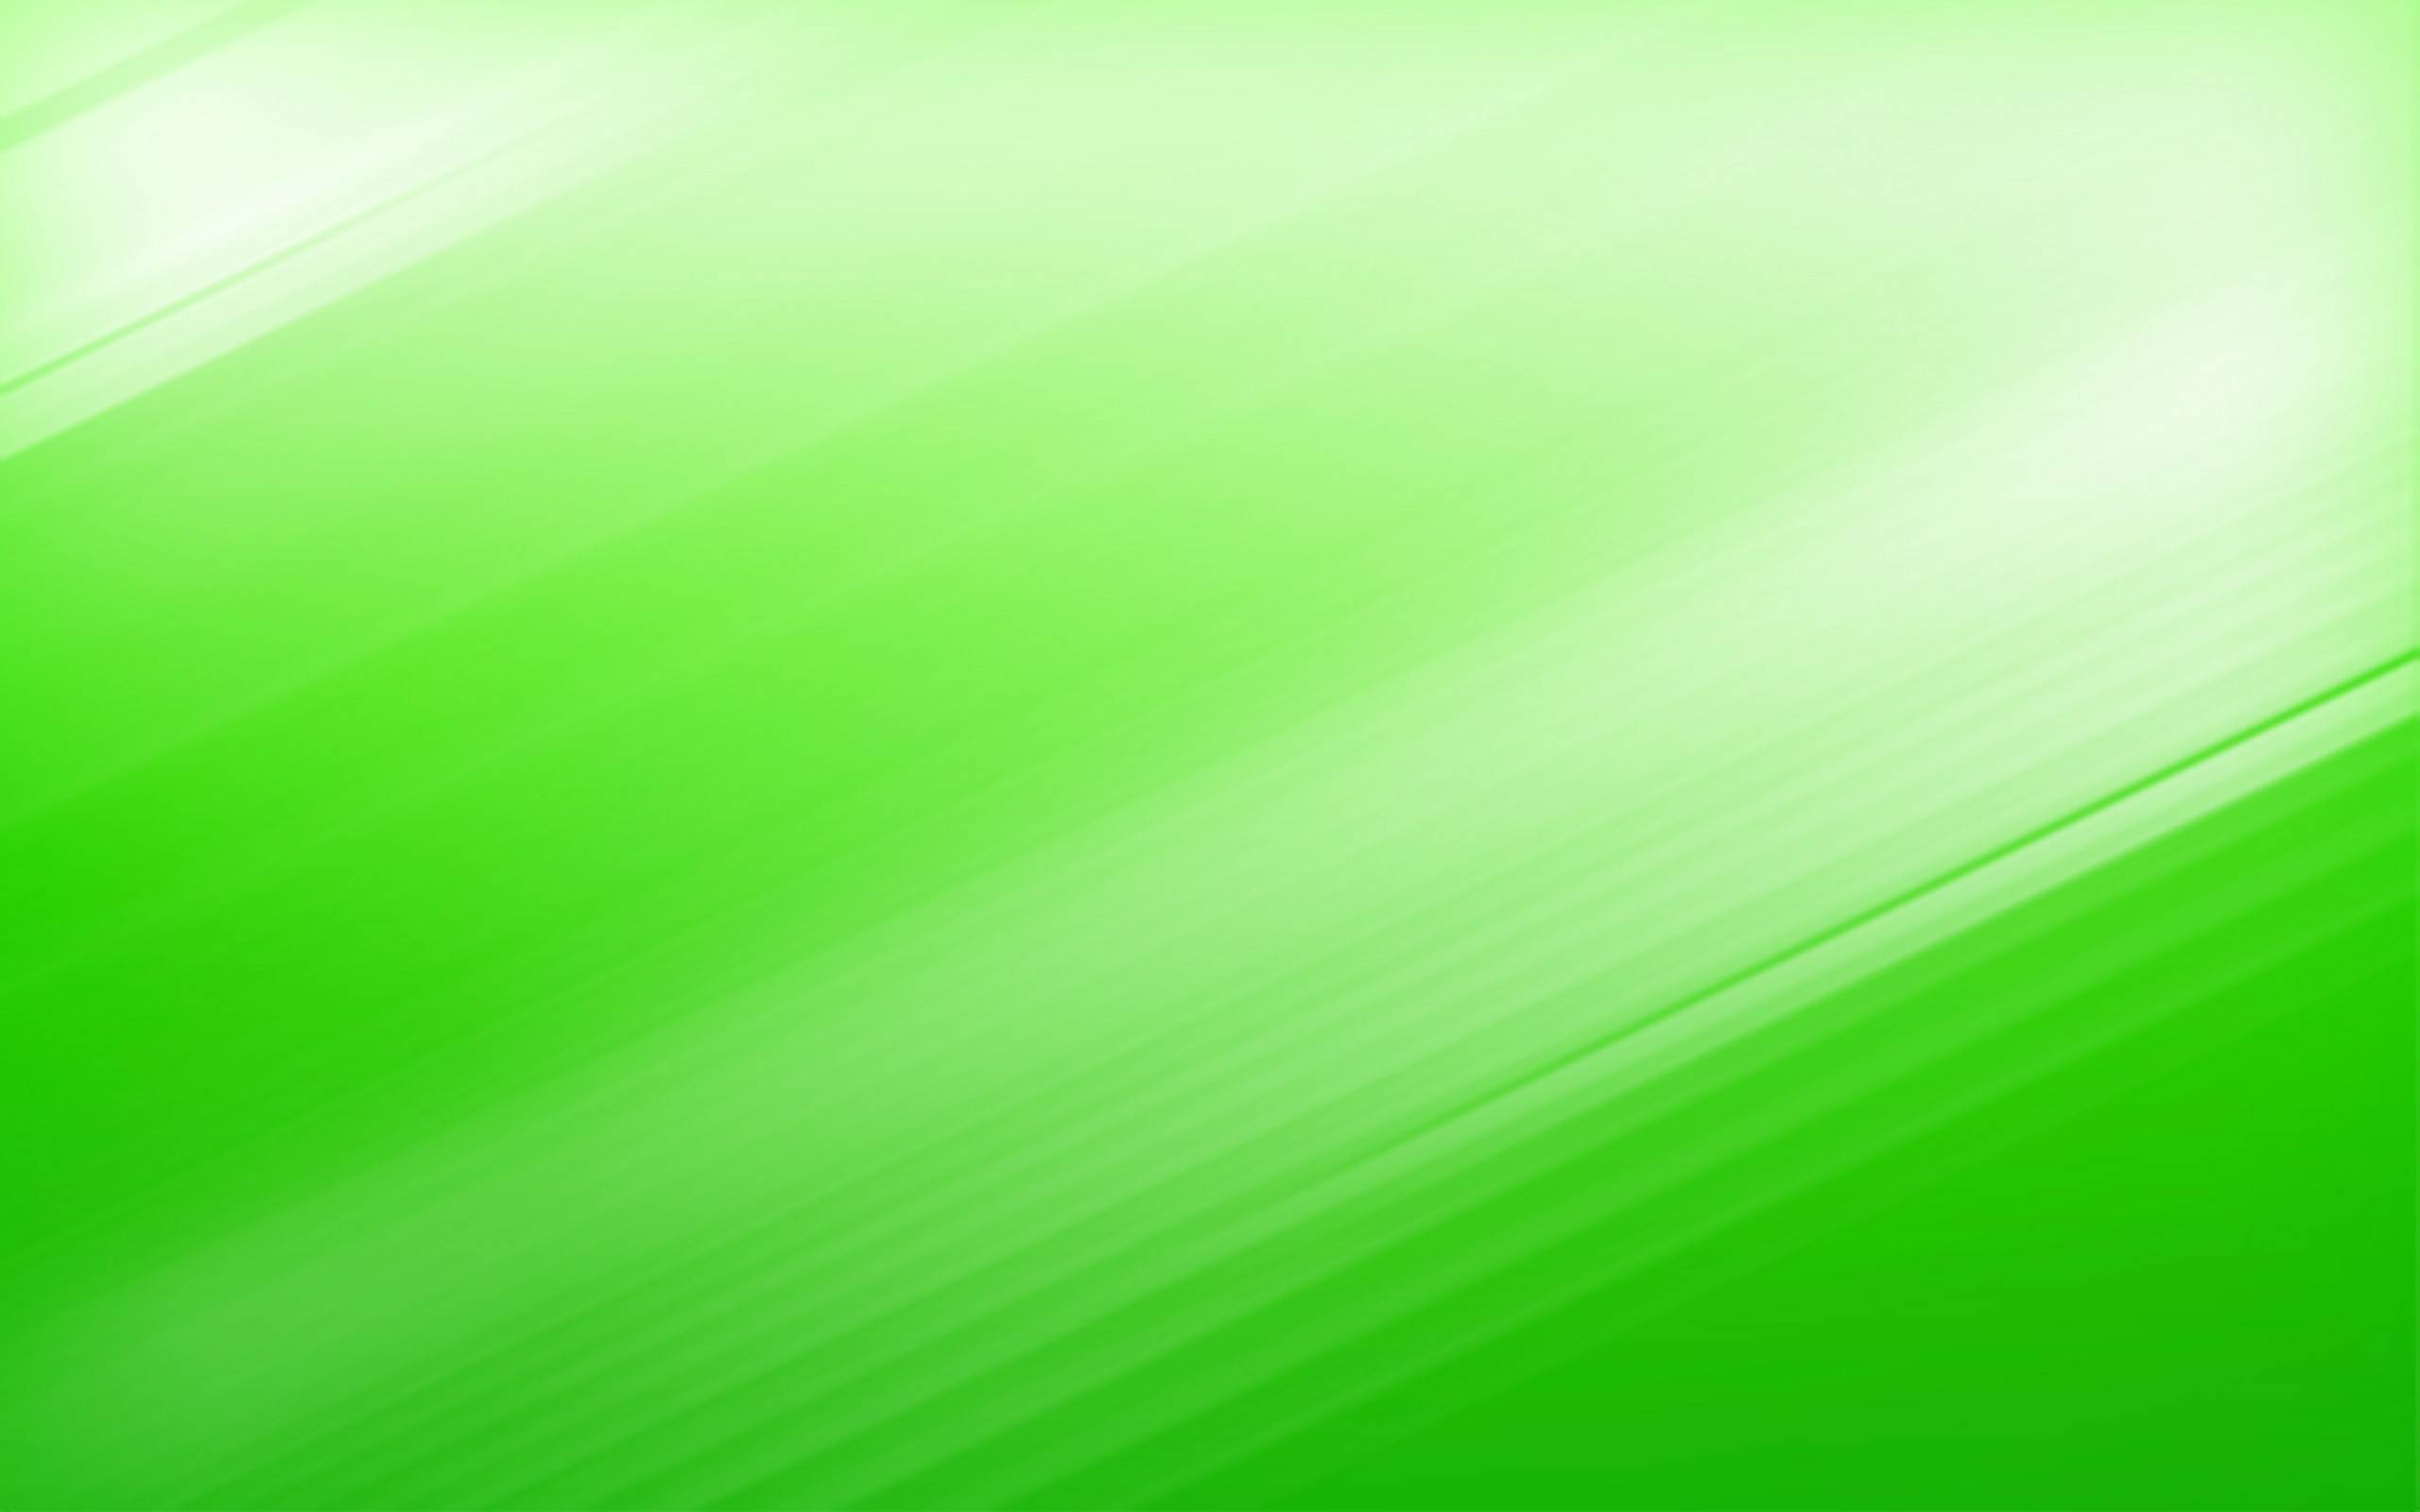 green and white wallpaper wallpapersafari